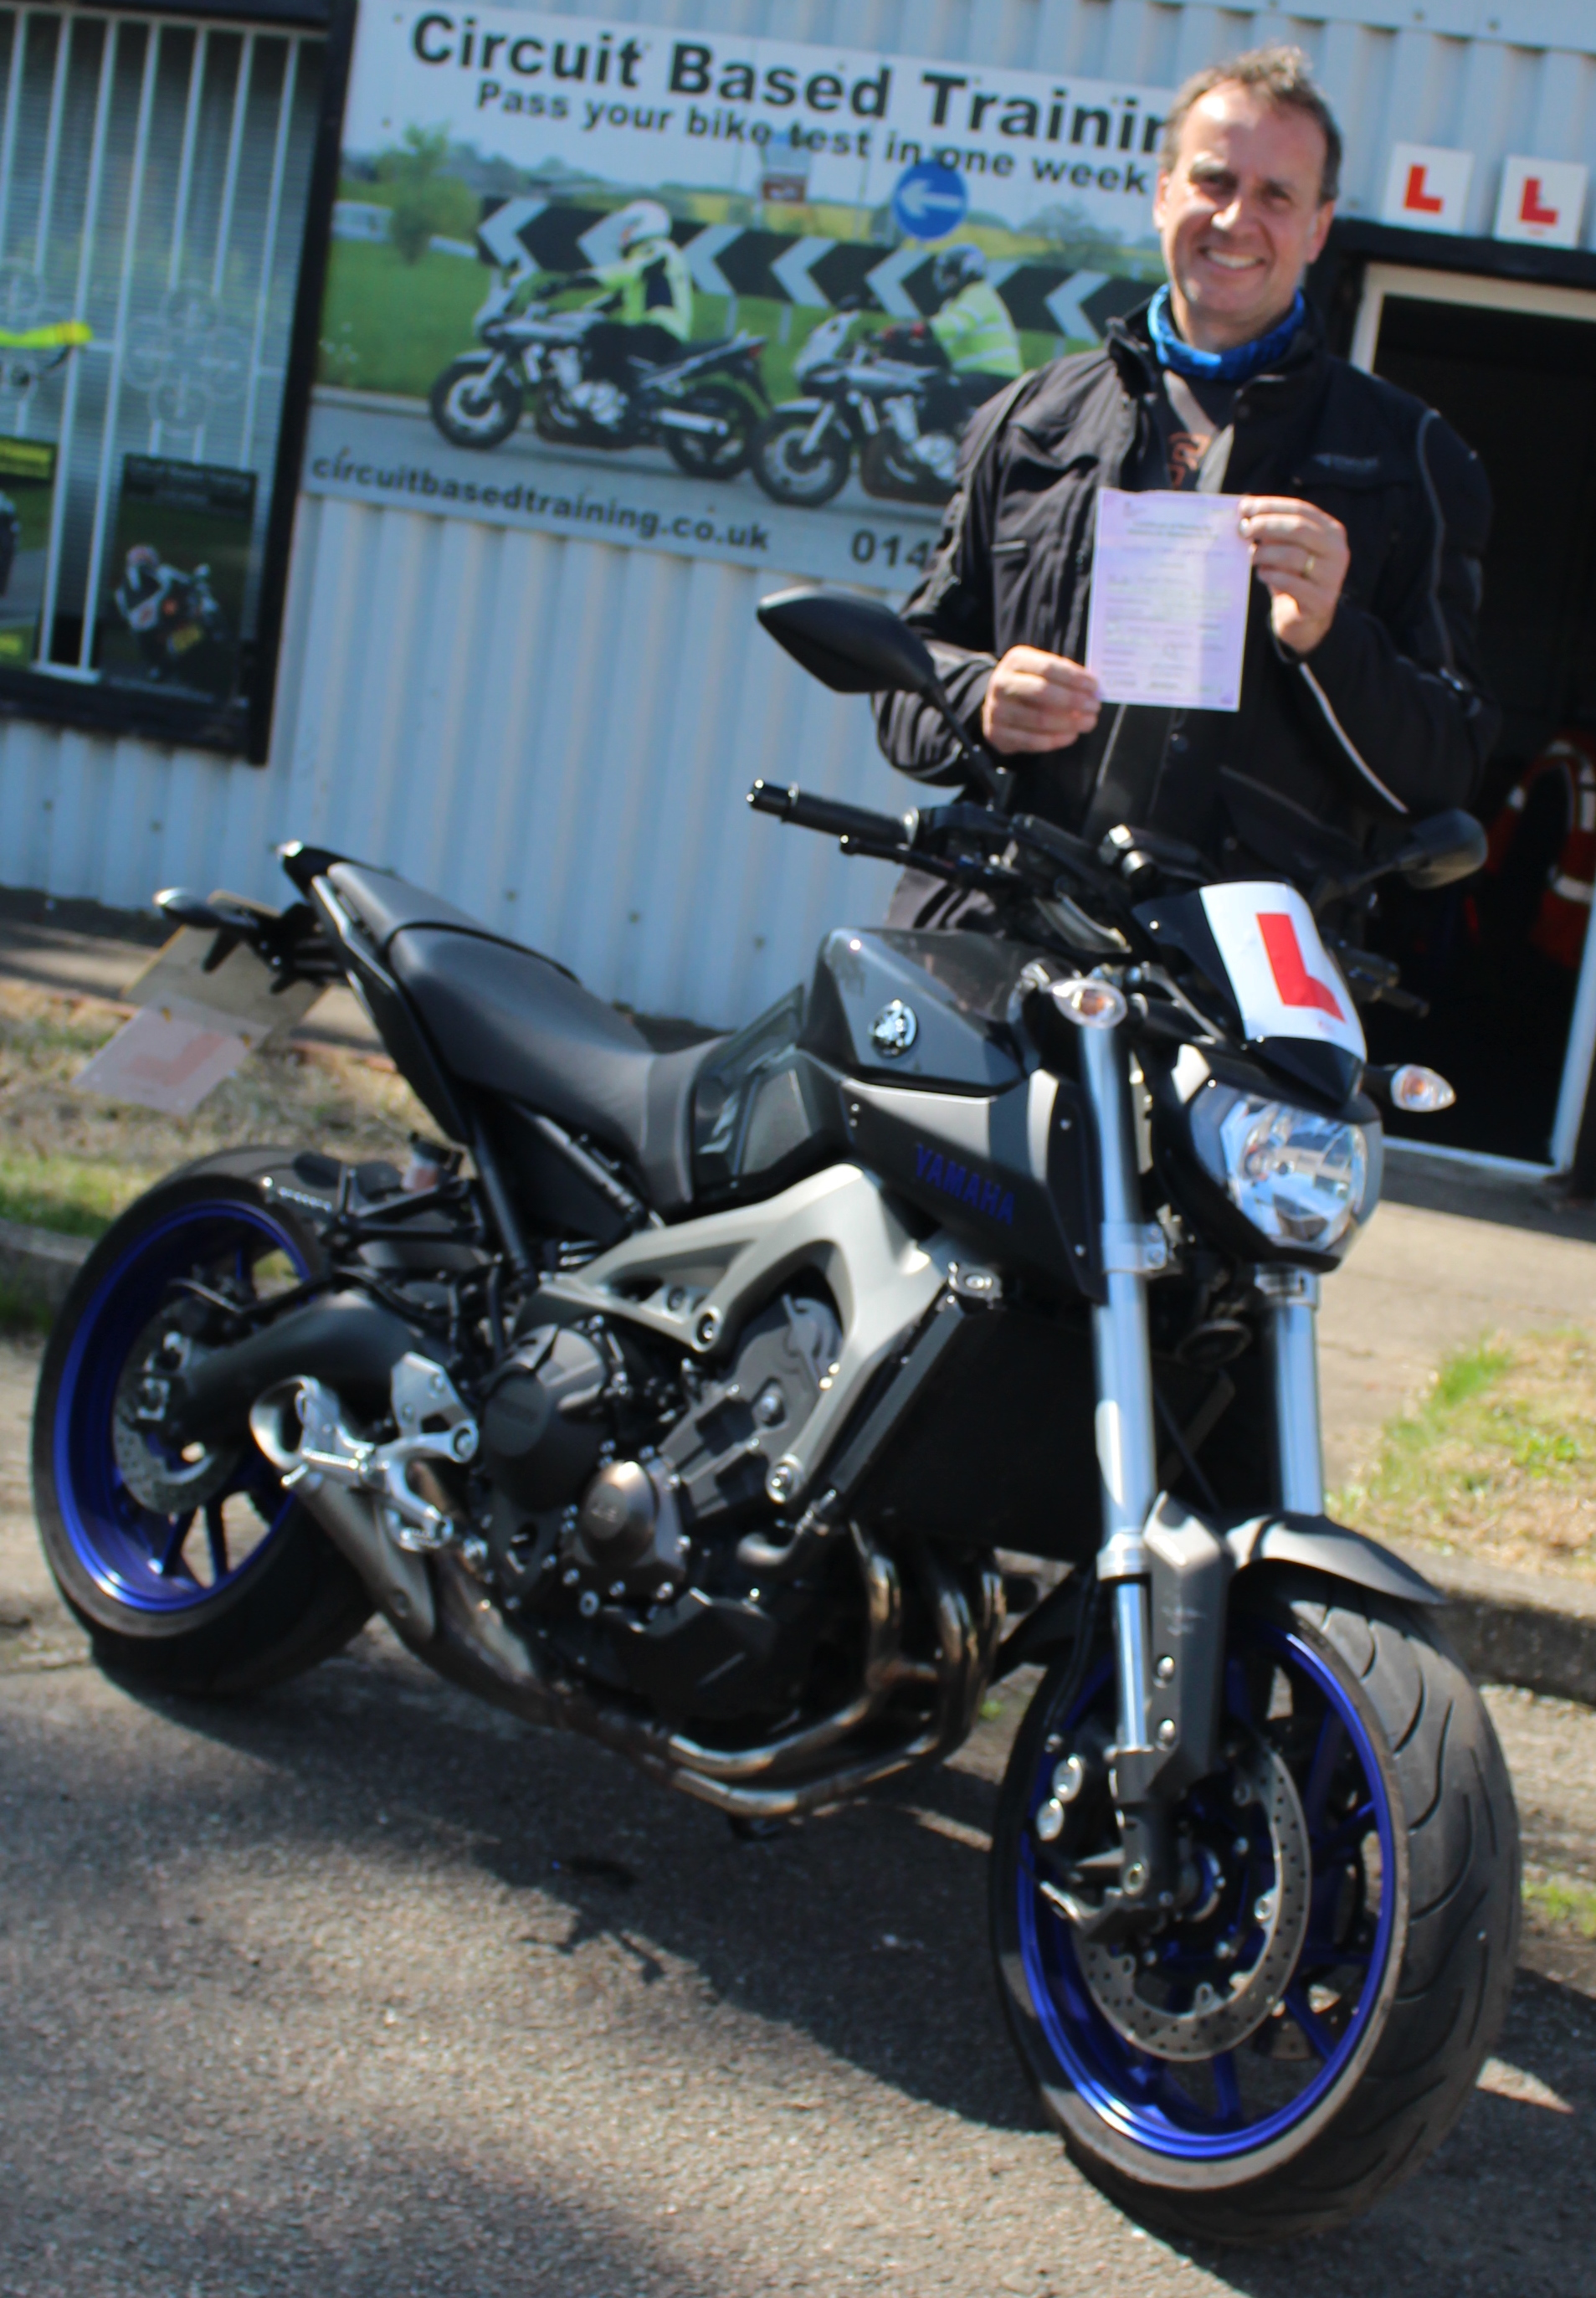 CBT Direct Access Motorcycle training Mod 1 practice on track Leicester London Southampton Milton Keynes Oxford Sutton Coldfield